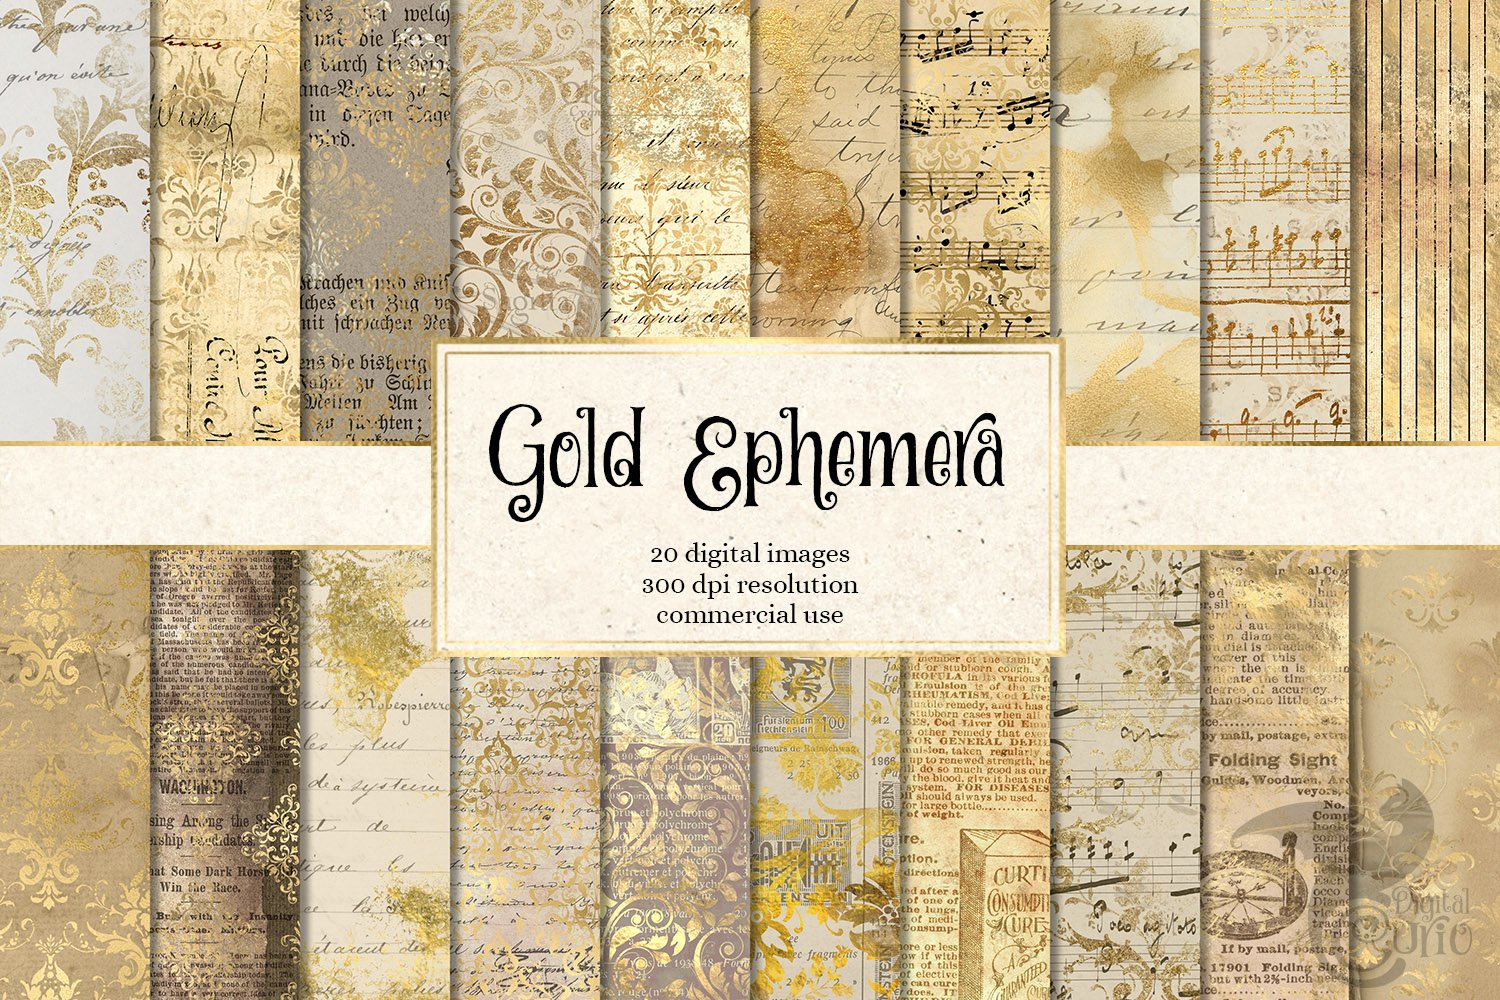 Gold Ephemera